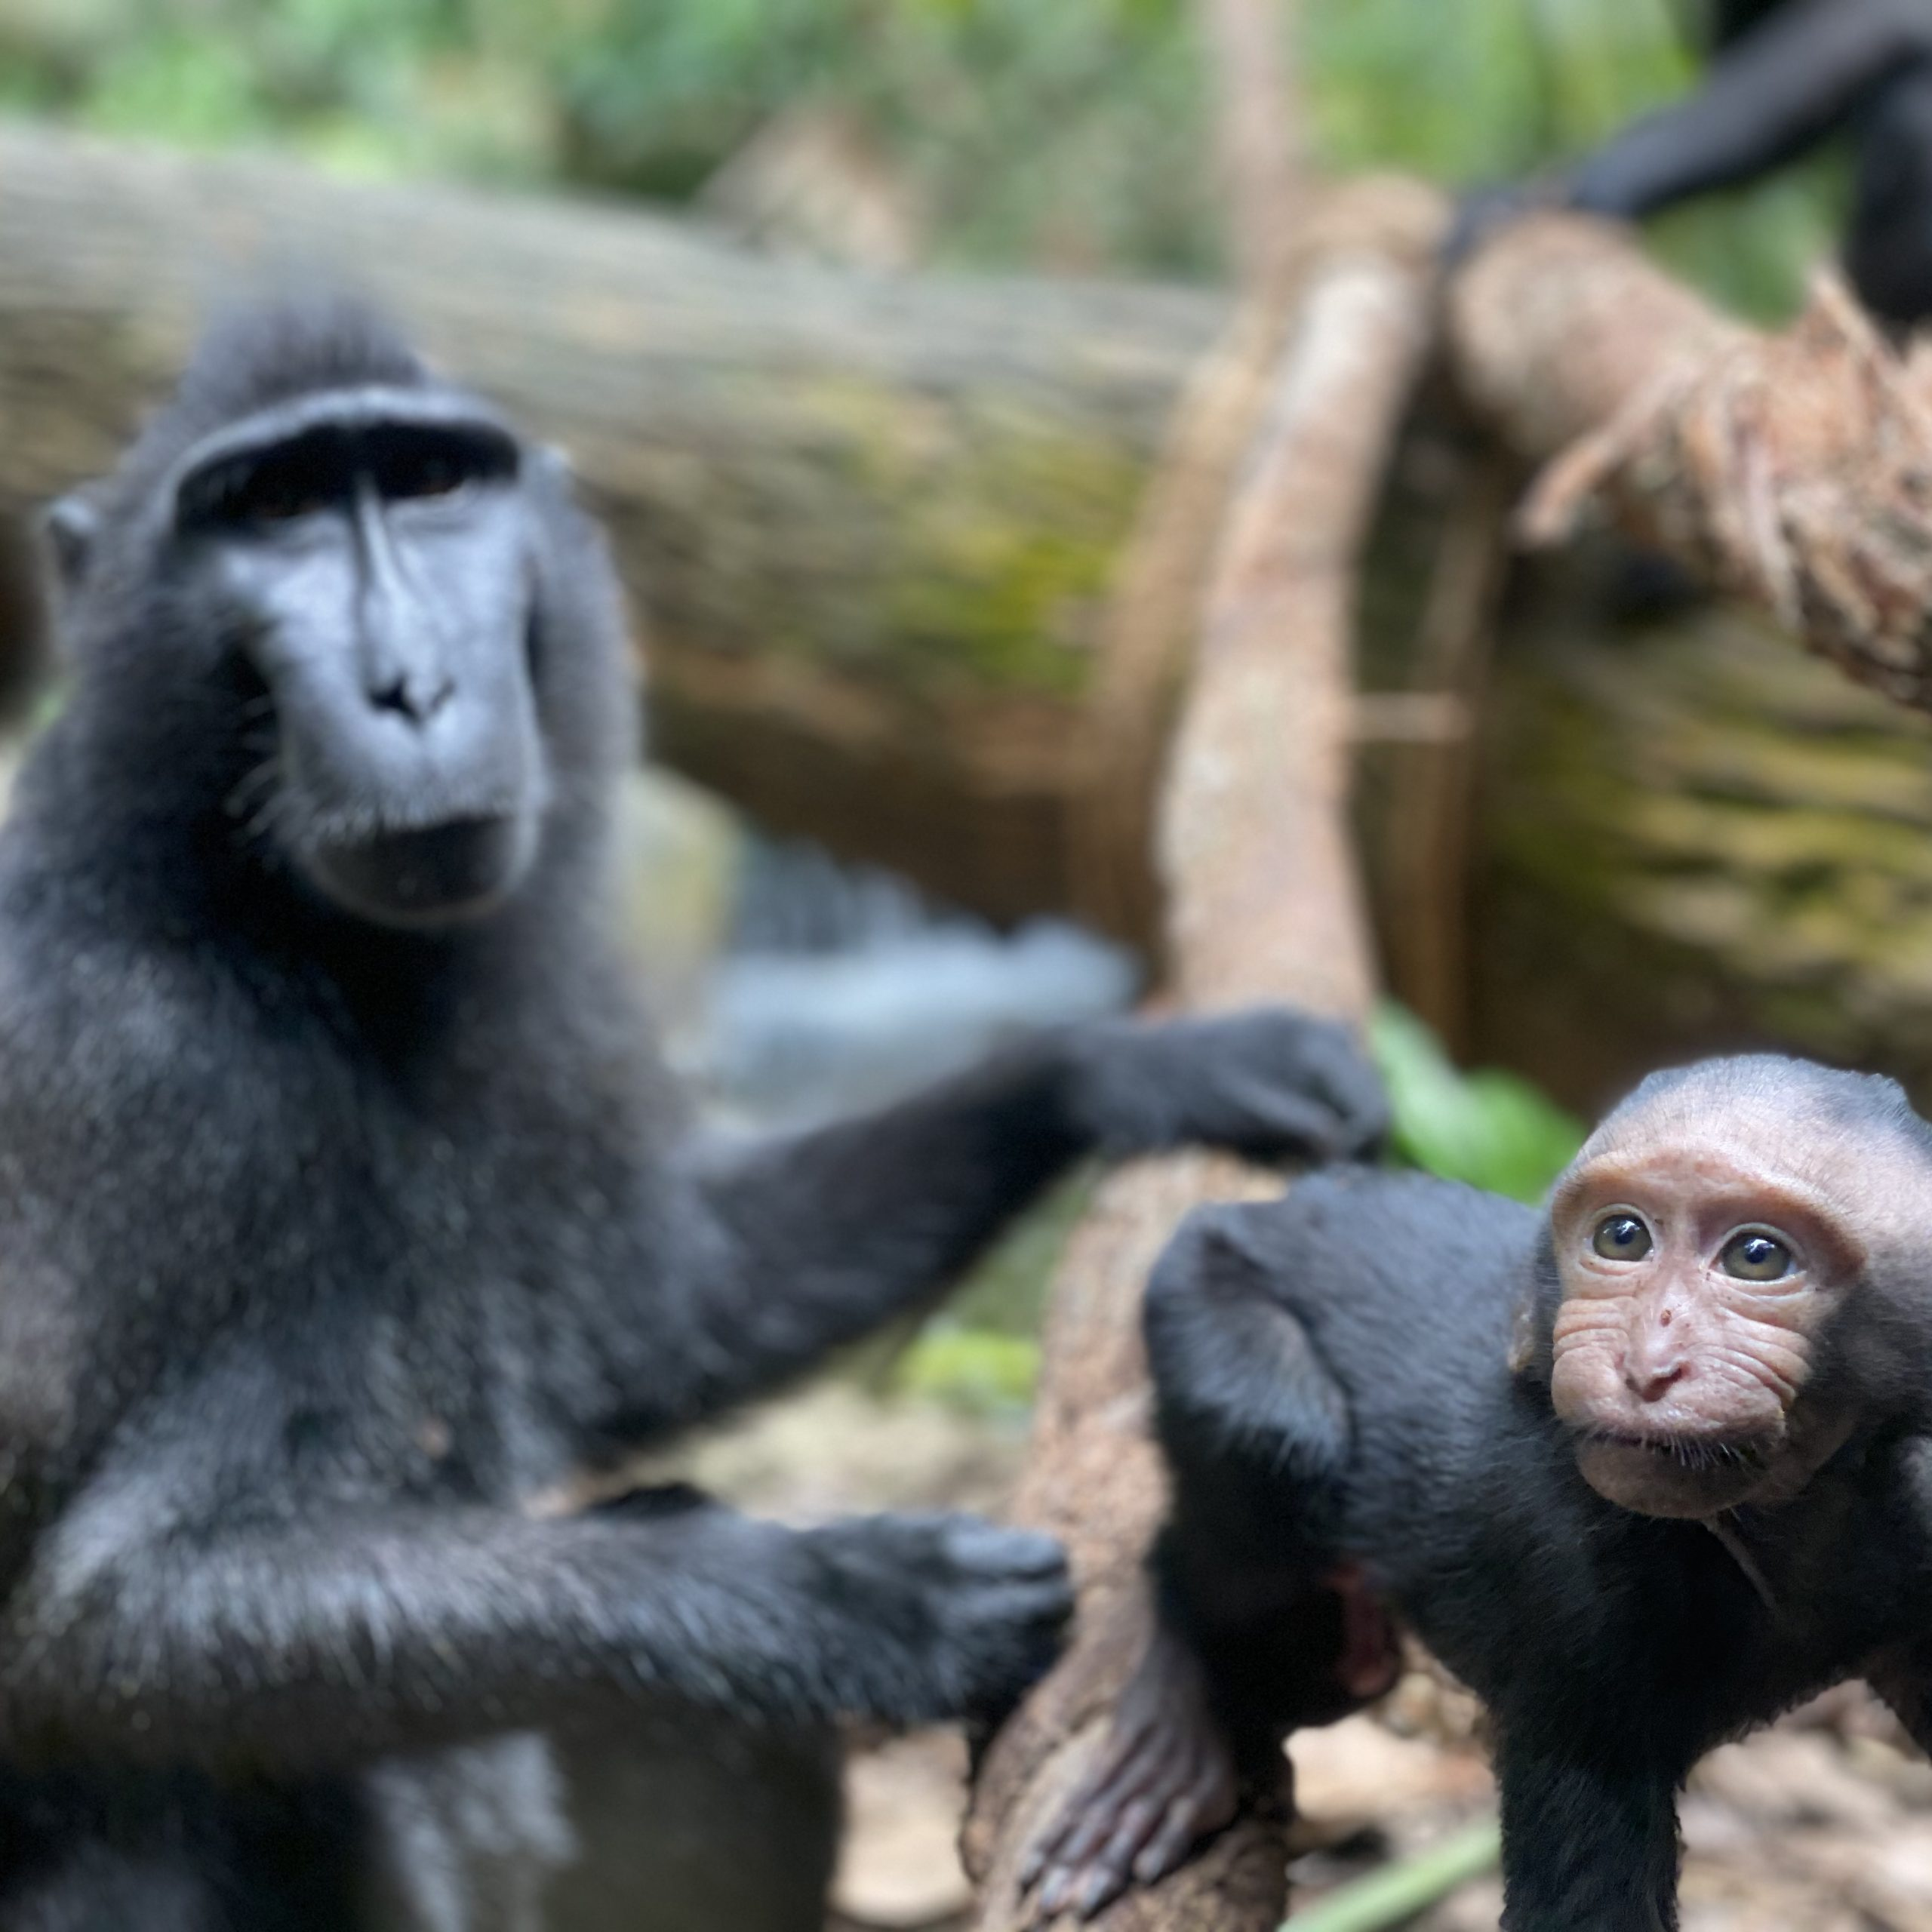 Celebes crested macaques can only be found in Sulawesi and its neighbouring islands. Singapore Zoo's newborn boy was named Joyo, an Indonesian name which means